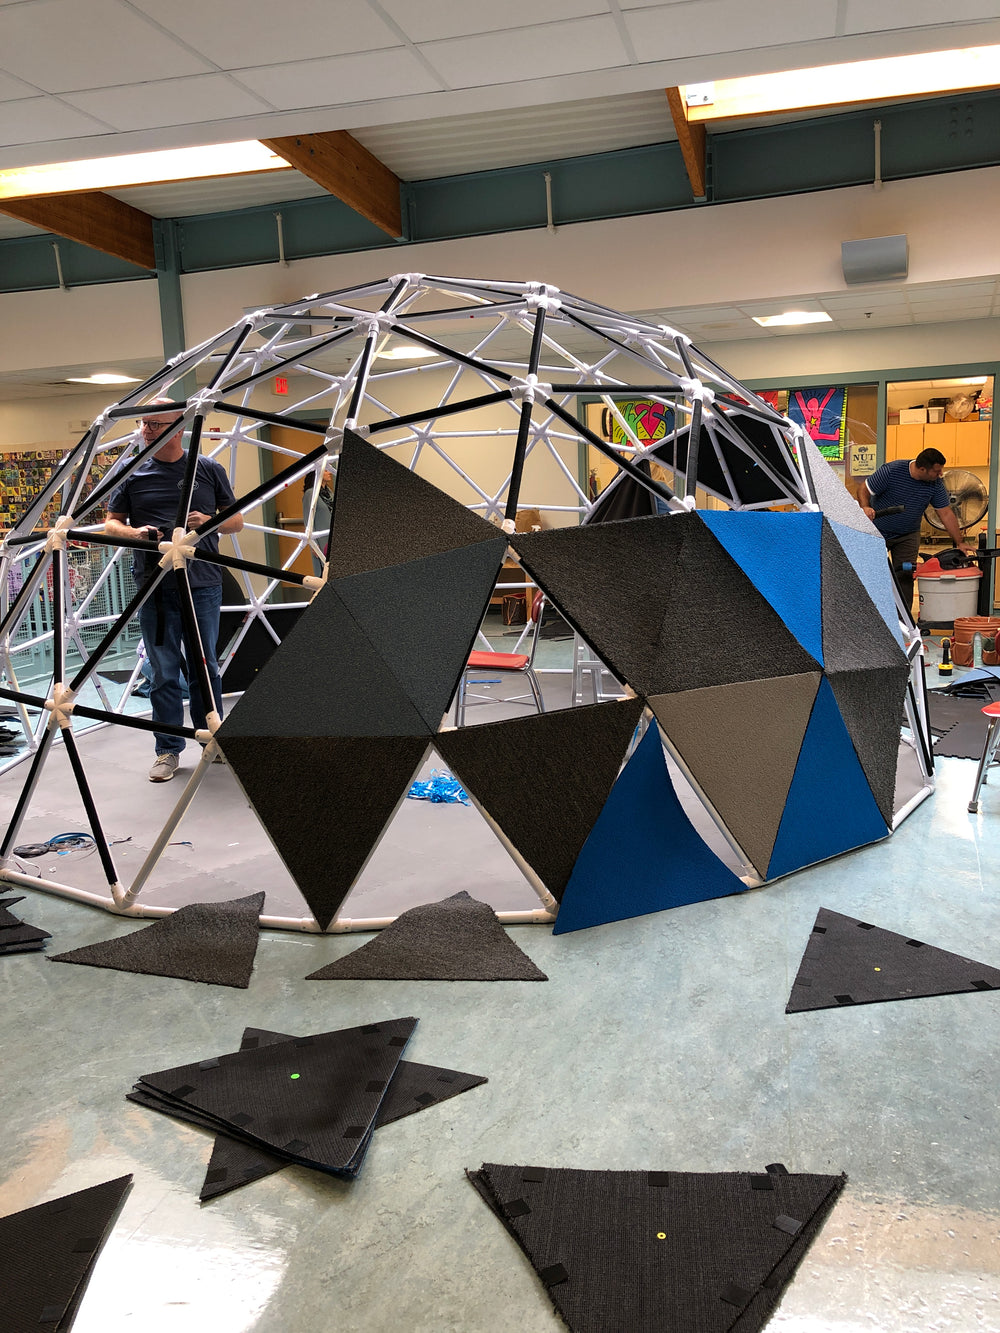 Geodesic Dome Structure being used for video production.